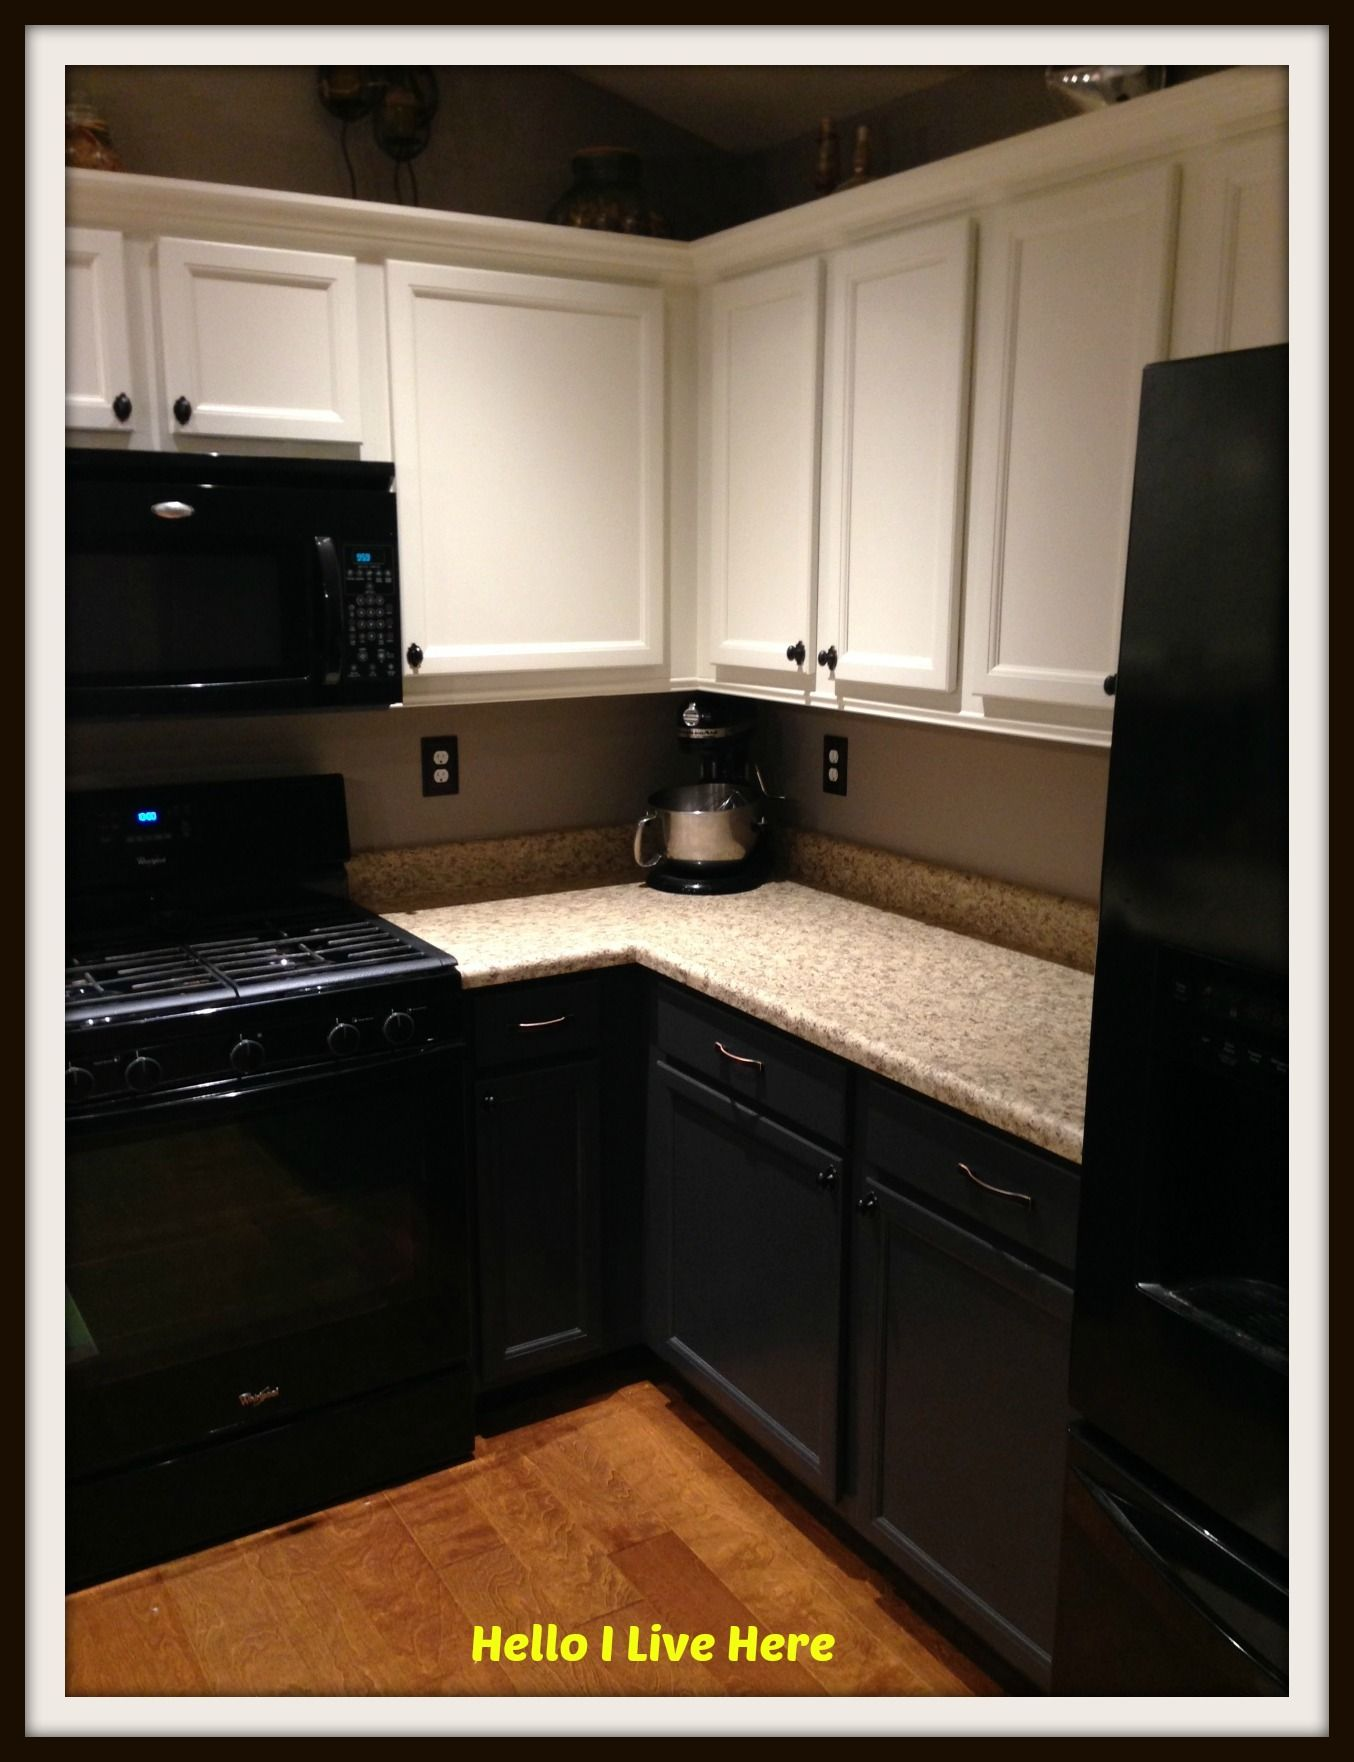 How To Paint Kitchen Cabinets Http://helloilivehere.com/paint Kitchen